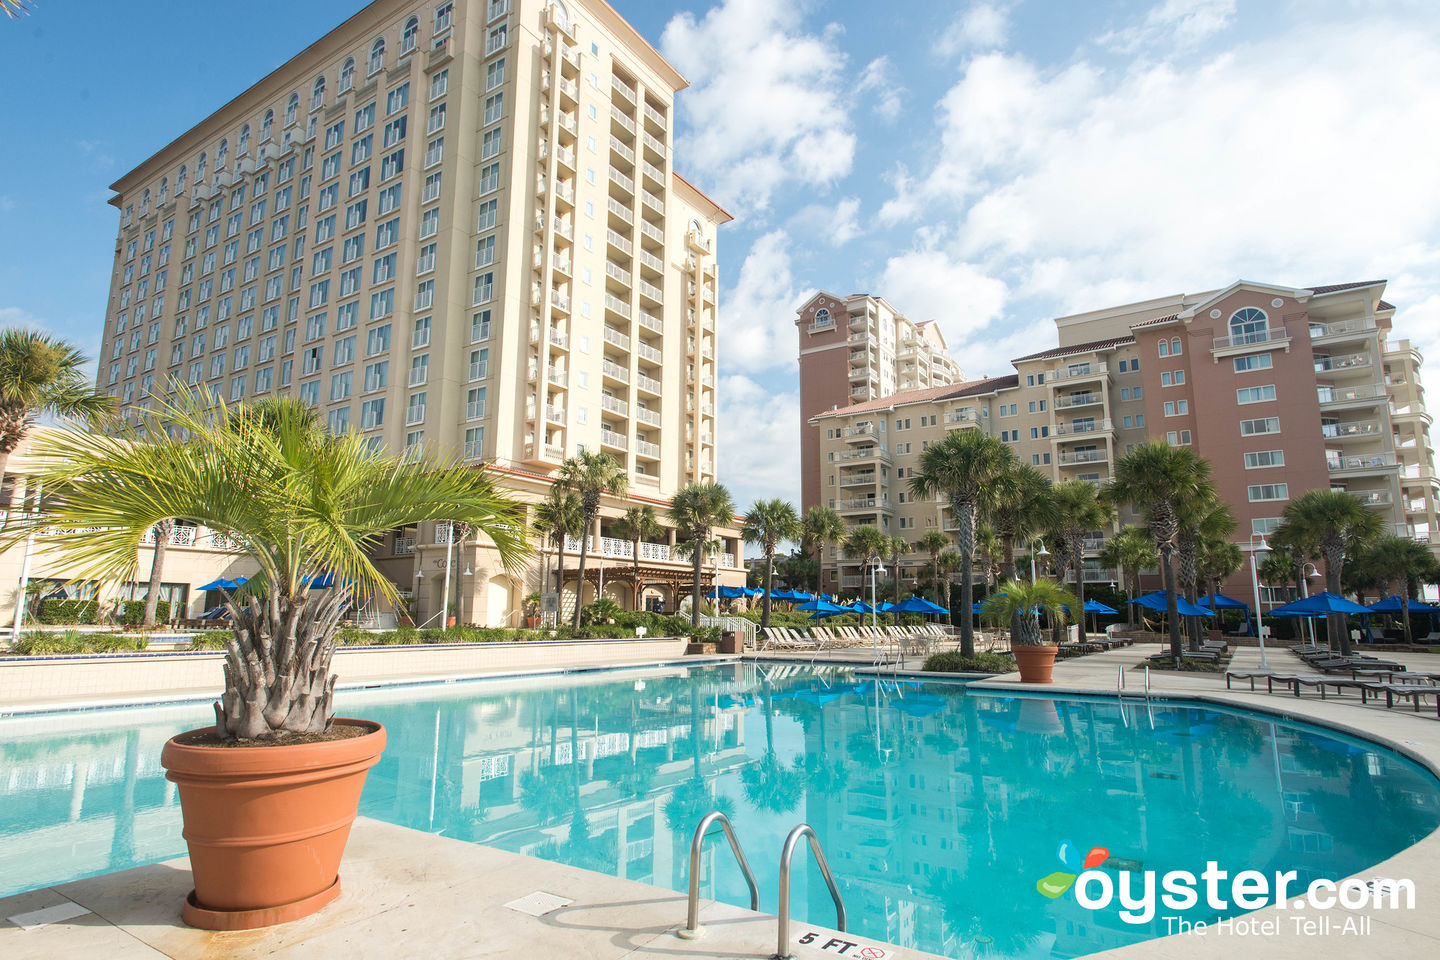 Marriott Myrtle Beach Resort Spa At Grande Dunes Review What To Really Expect If You Stay